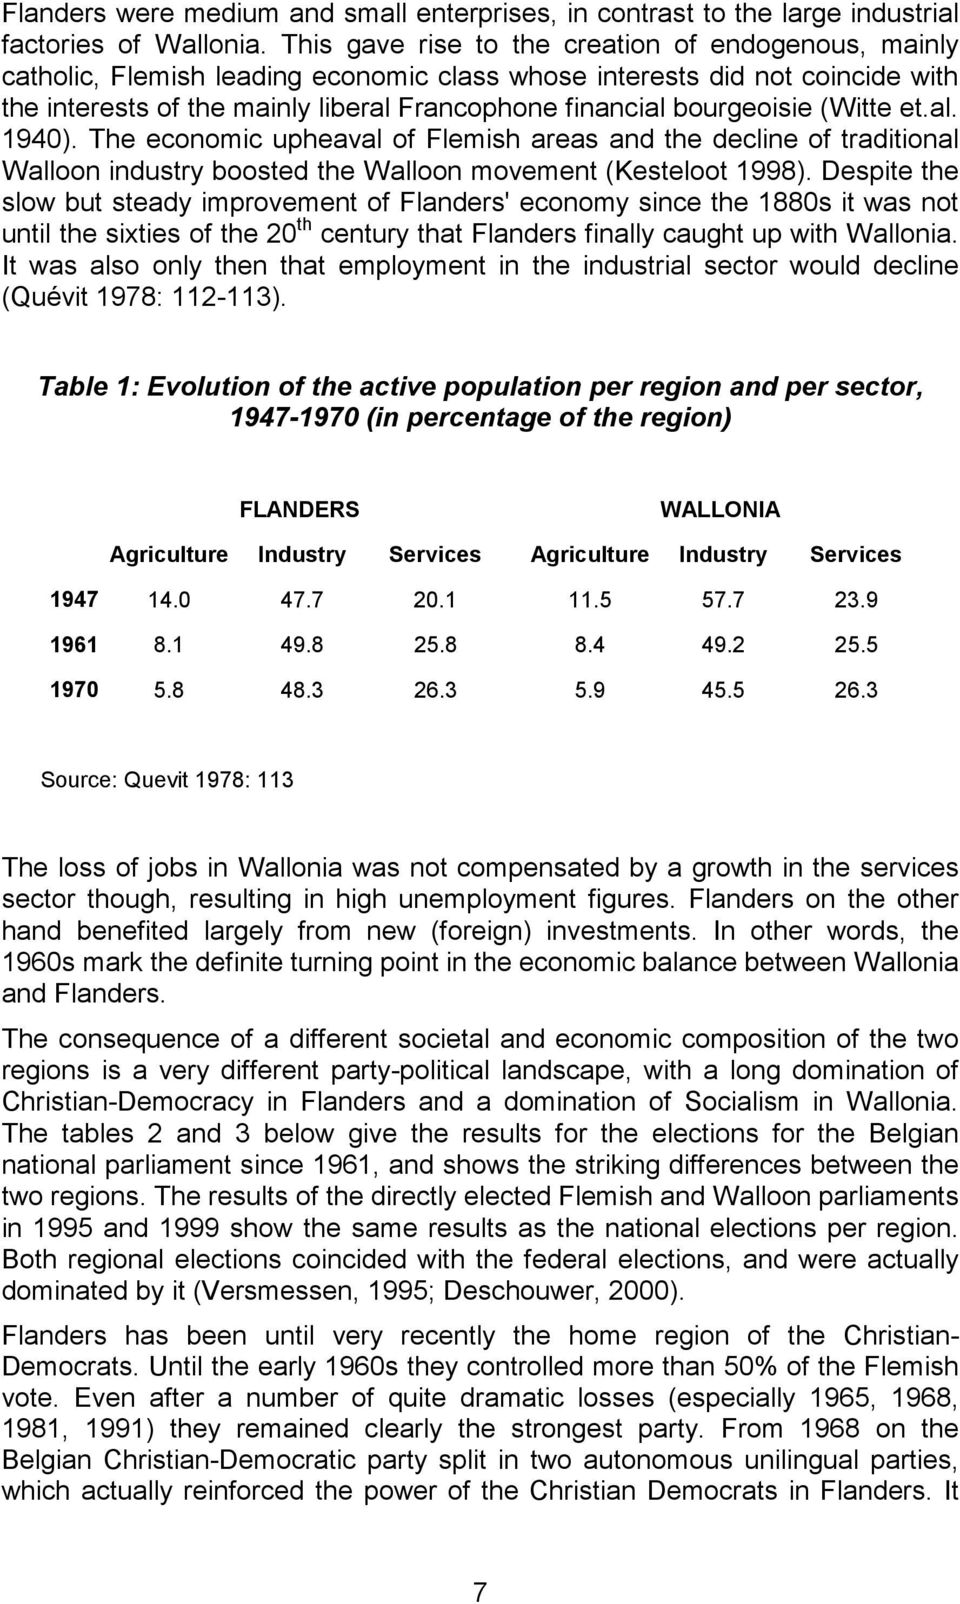 bourgeoisie (Witte et.al. 1940). The economic upheaval of Flemish areas and the decline of traditional Walloon industry boosted the Walloon movement (Kesteloot 1998).